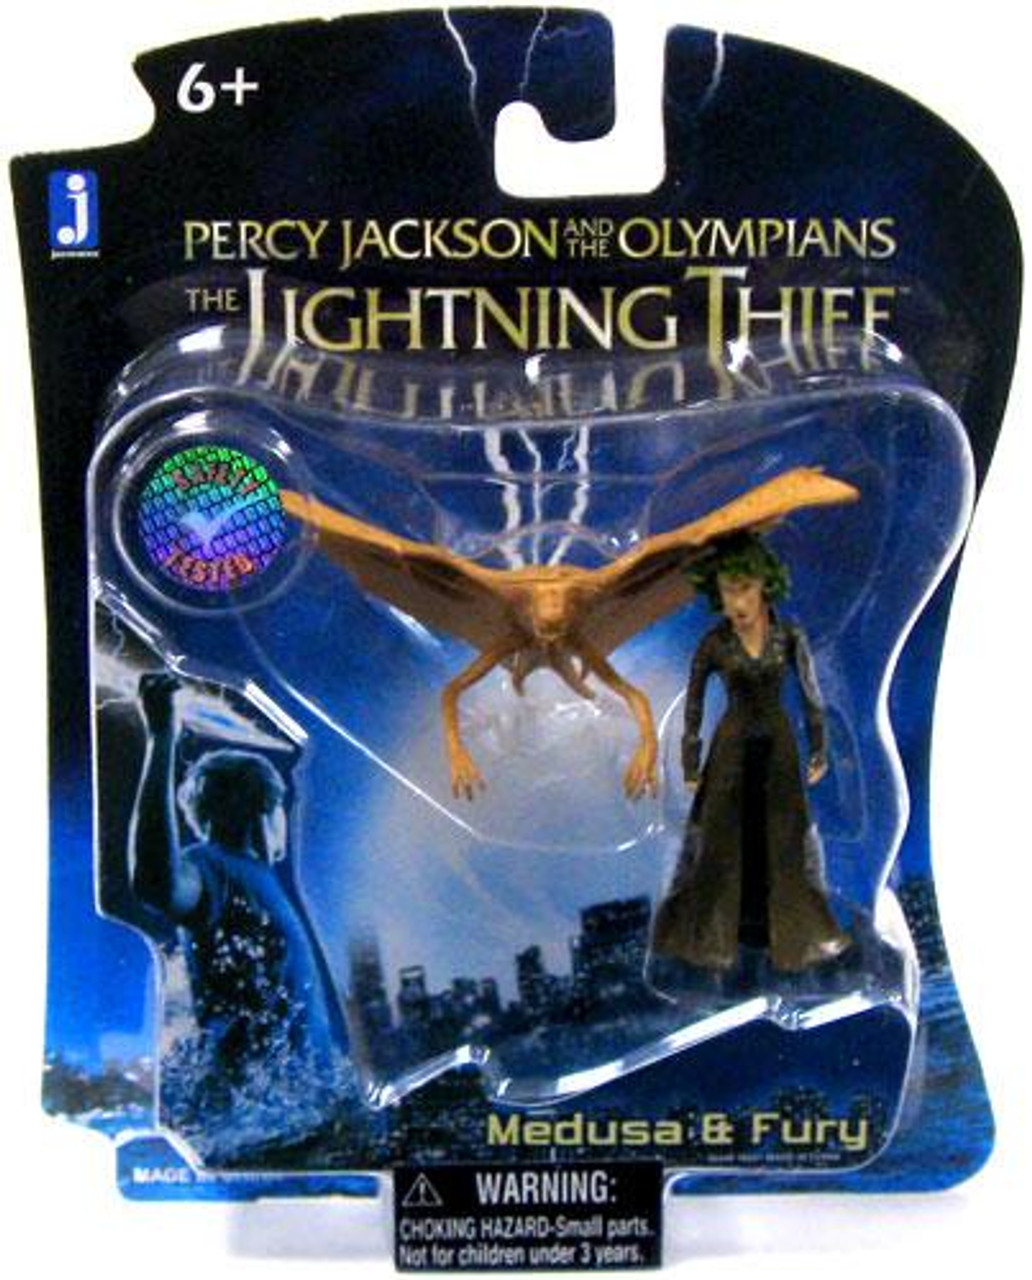 Percy Jackson The Lightning Thief Medusa & Fury Micro Figure 2-Pack